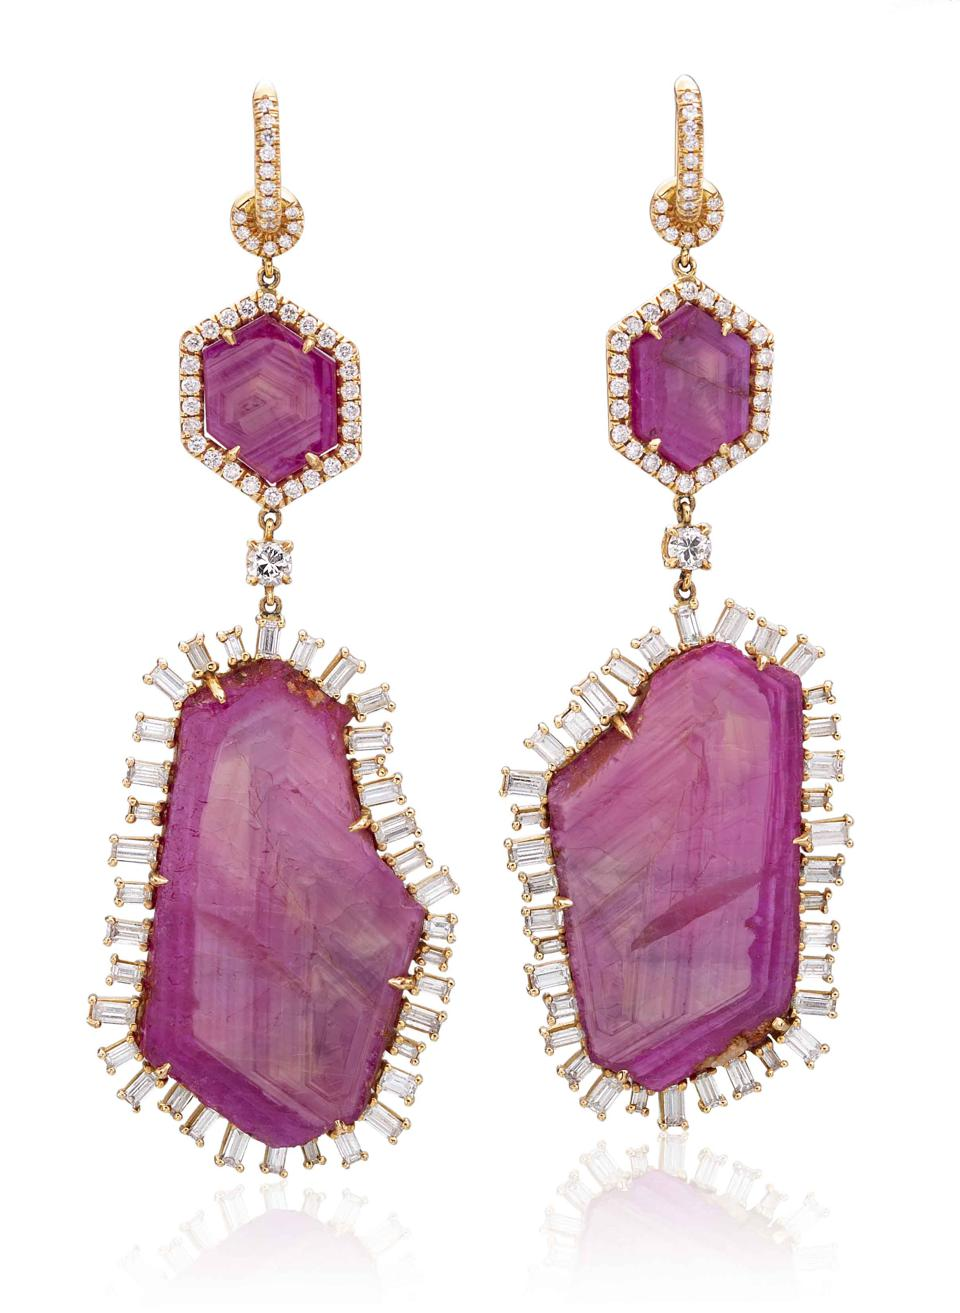 Nina Runsdorf earrings in 18K rose gold with diamond and ruby, price on request